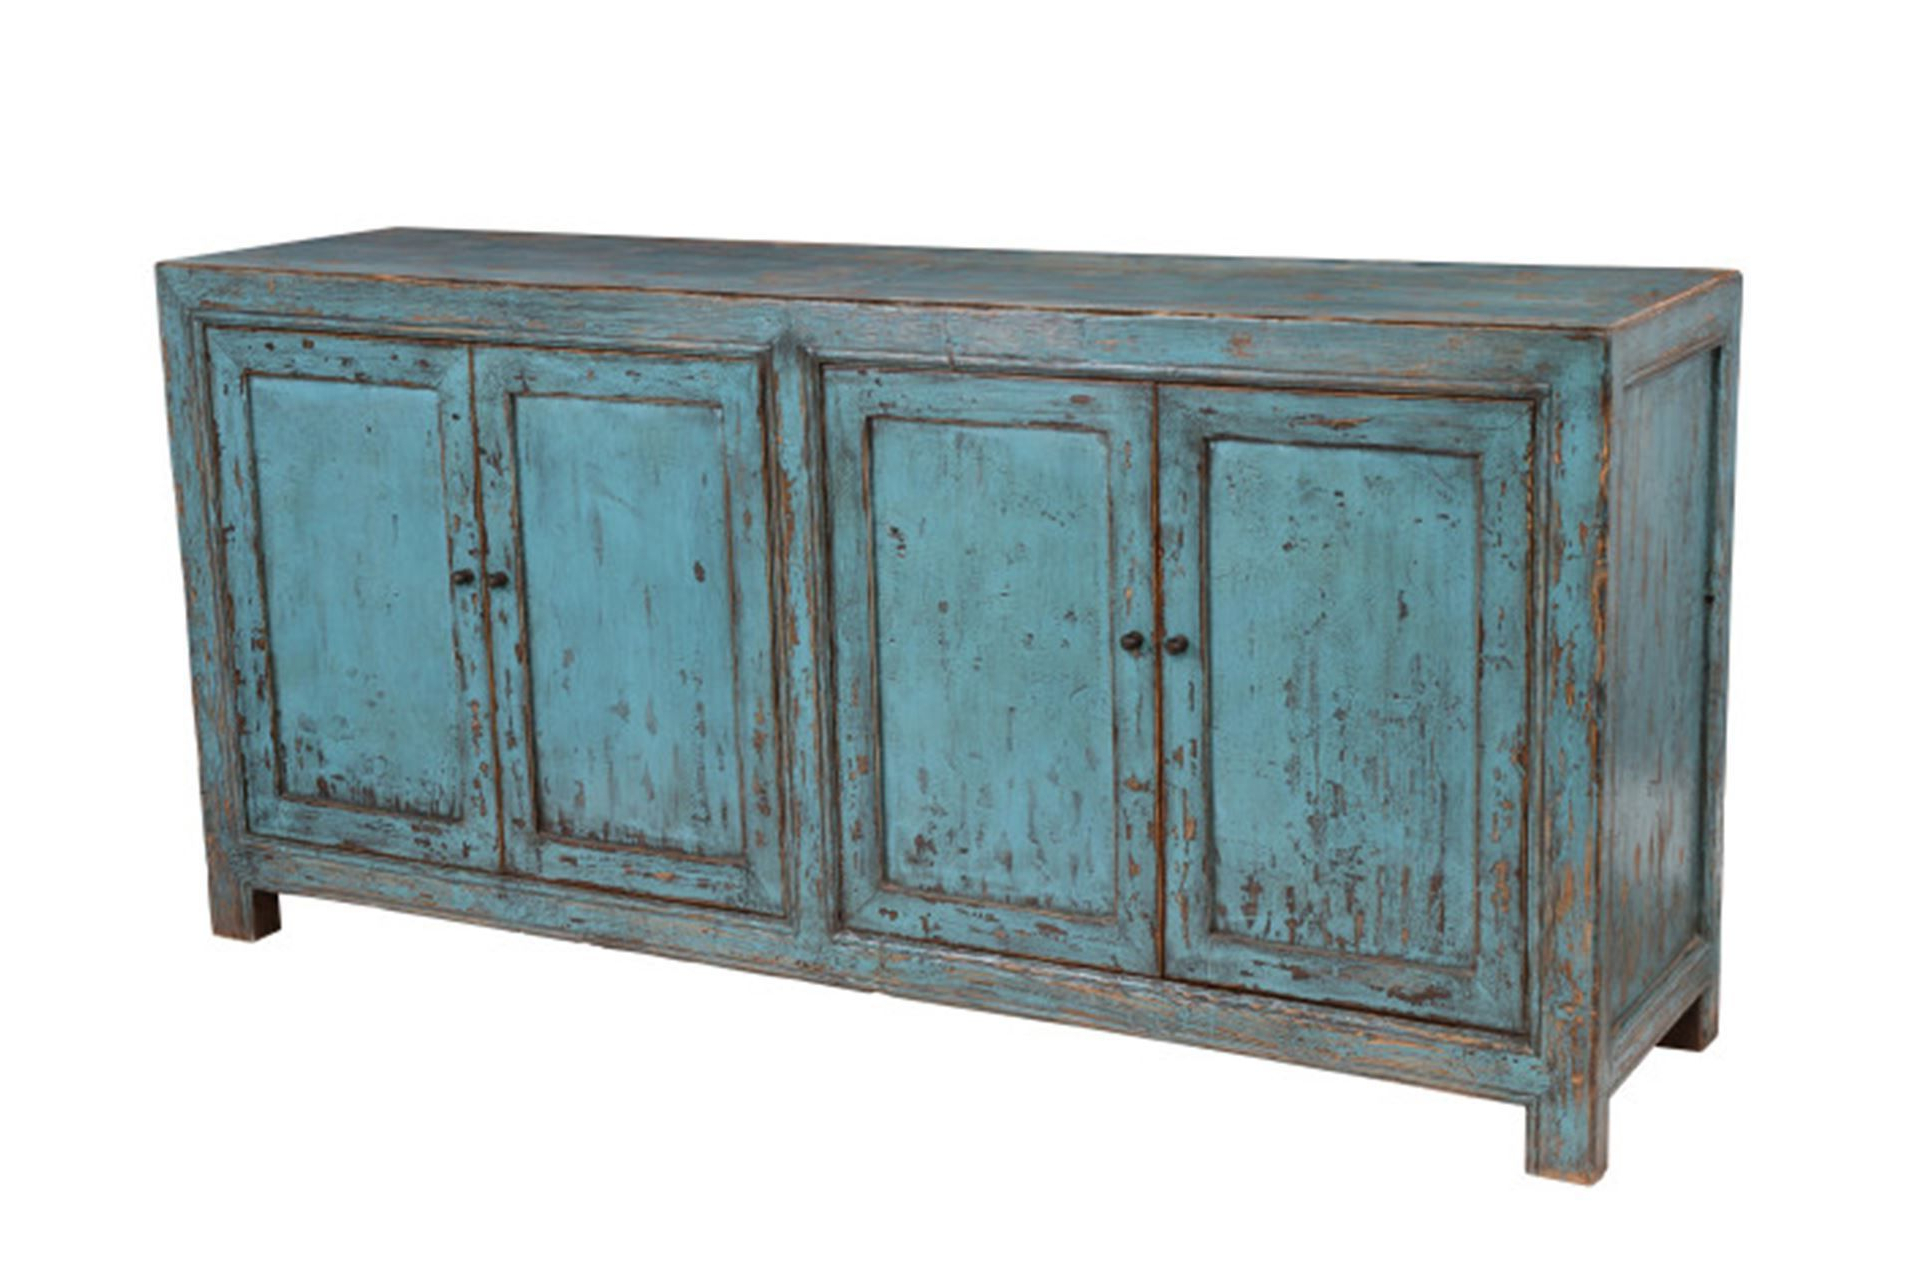 Pinterest Throughout Current Reclaimed Pine Turquoise 4 Door Sideboards (Gallery 2 of 20)